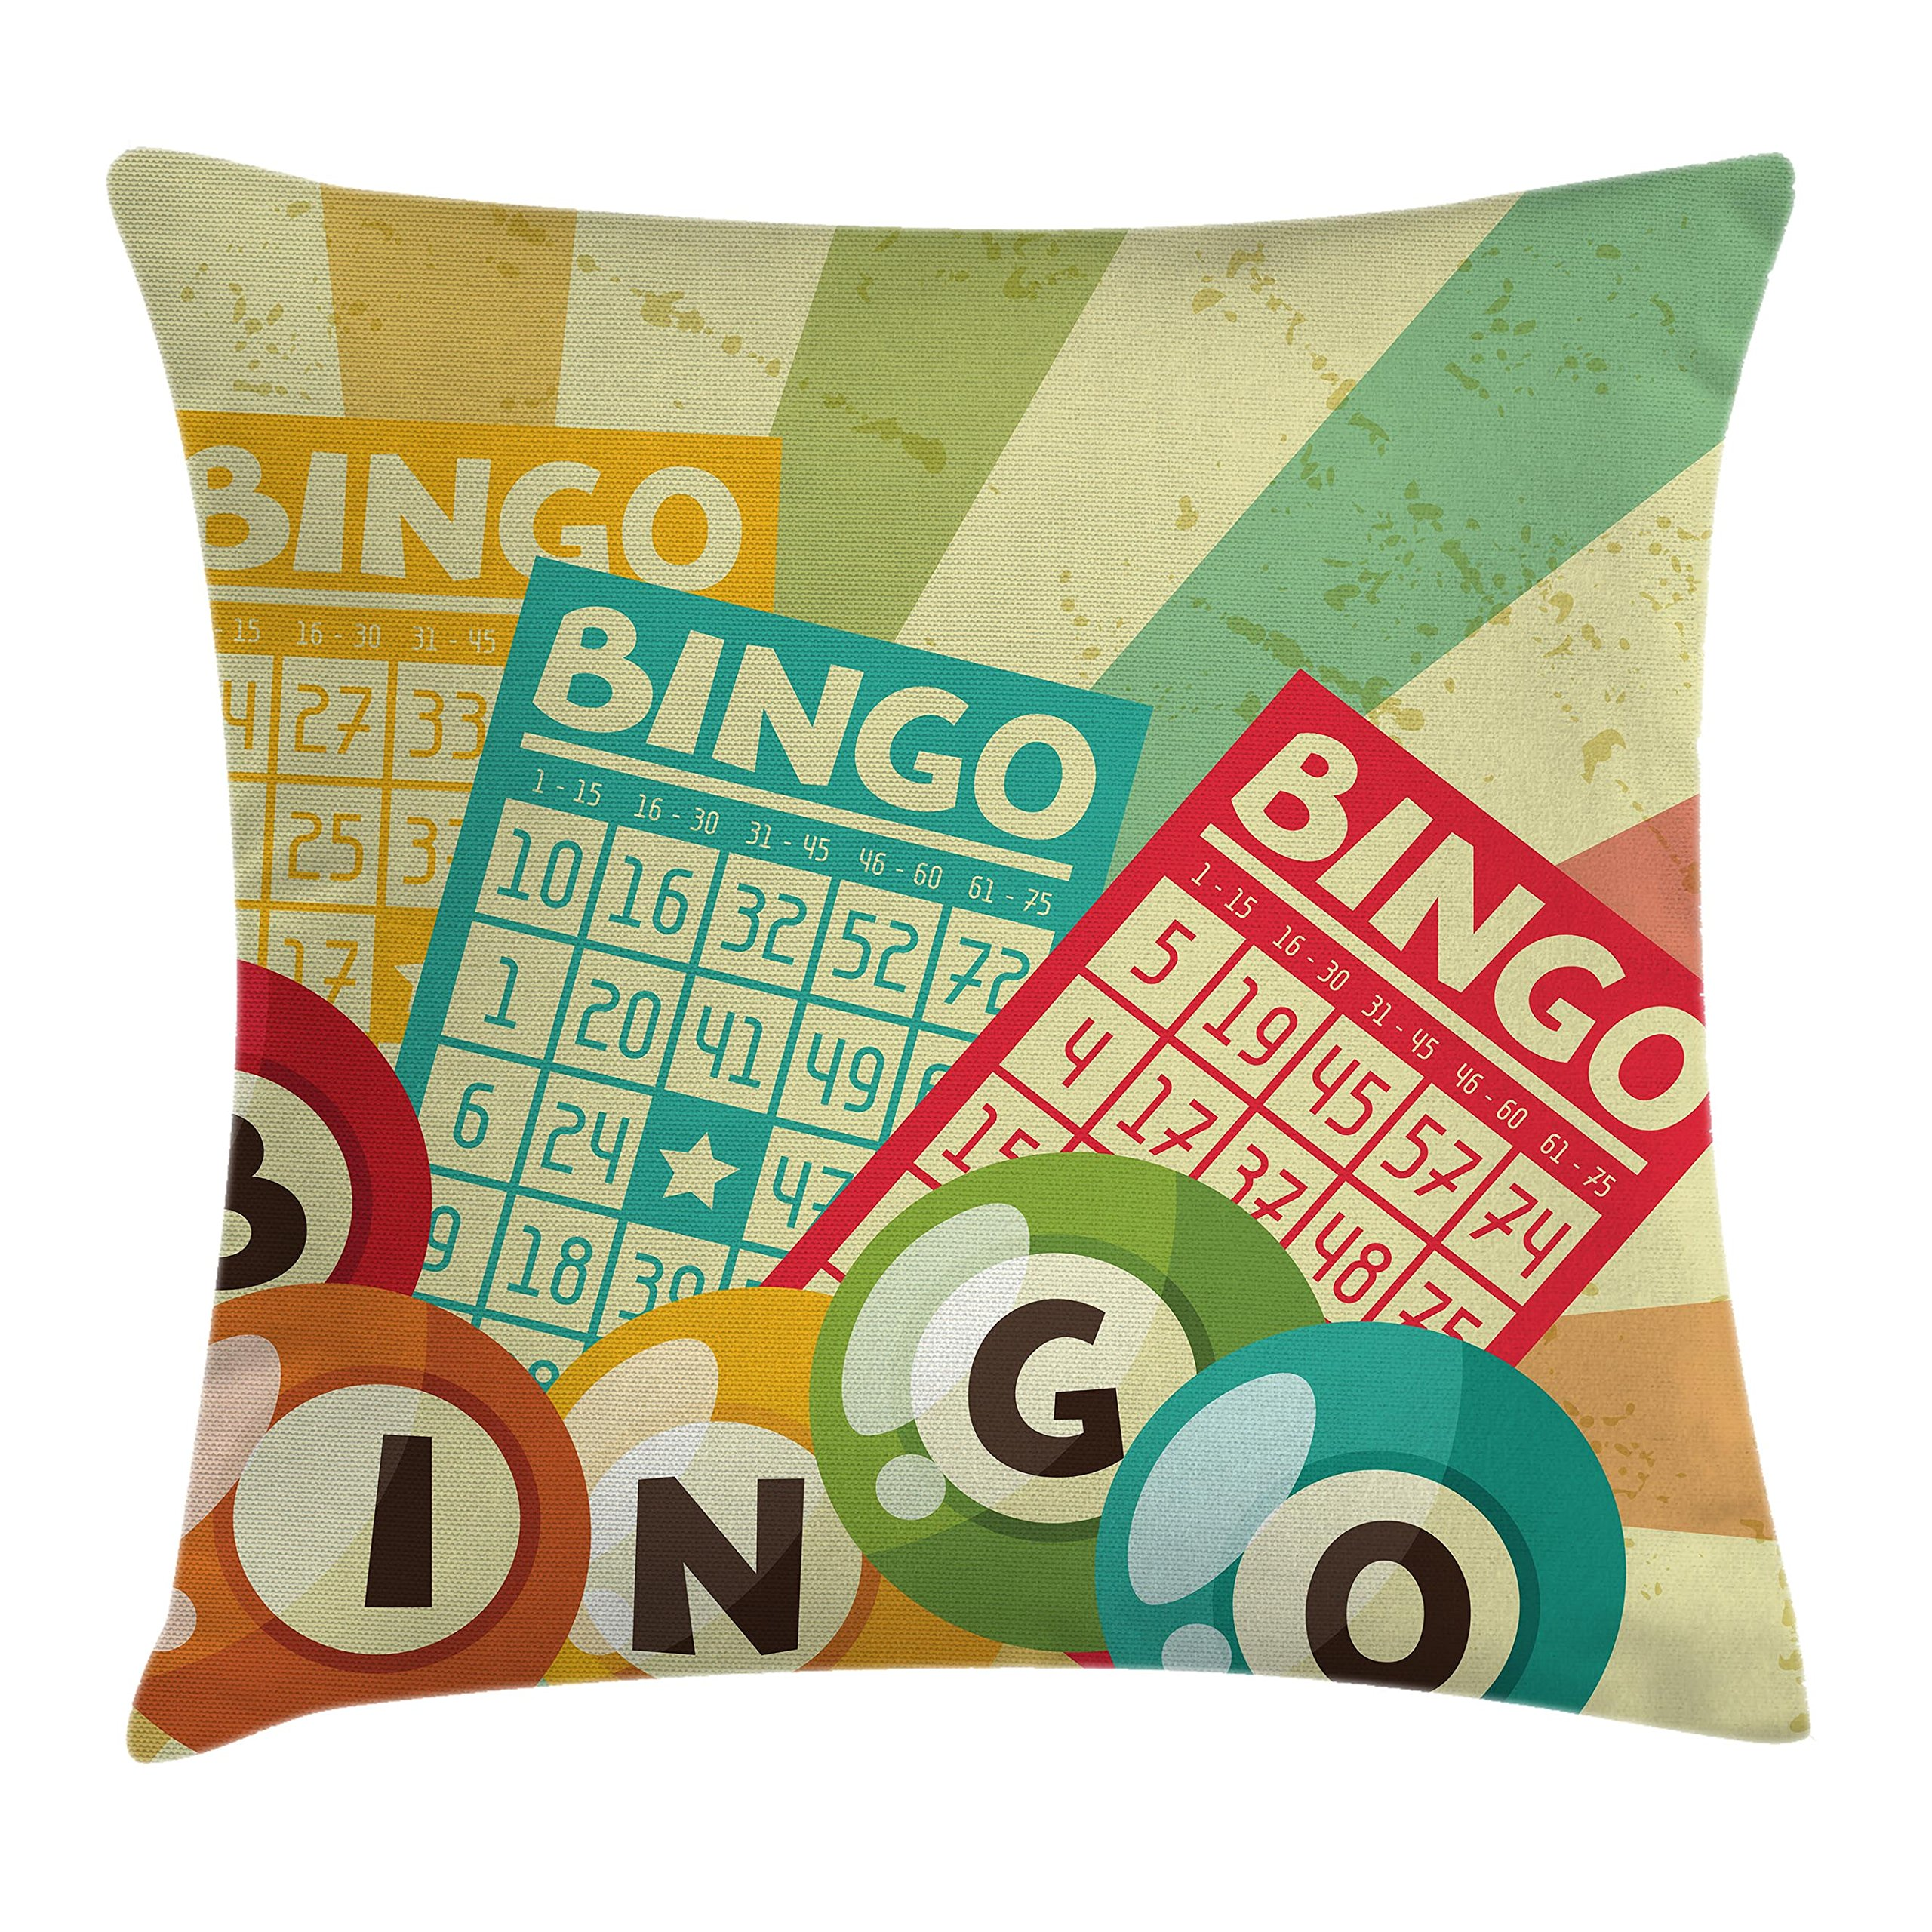 Ambesonne Vintage Decor Throw Pillow Cushion Cover, Bingo Game with Ball and Cards Pop Art Stylized Lottery Hobby Celebration Theme, Decorative Square Accent Pillow Case, 18 X 18 Inches, Multi